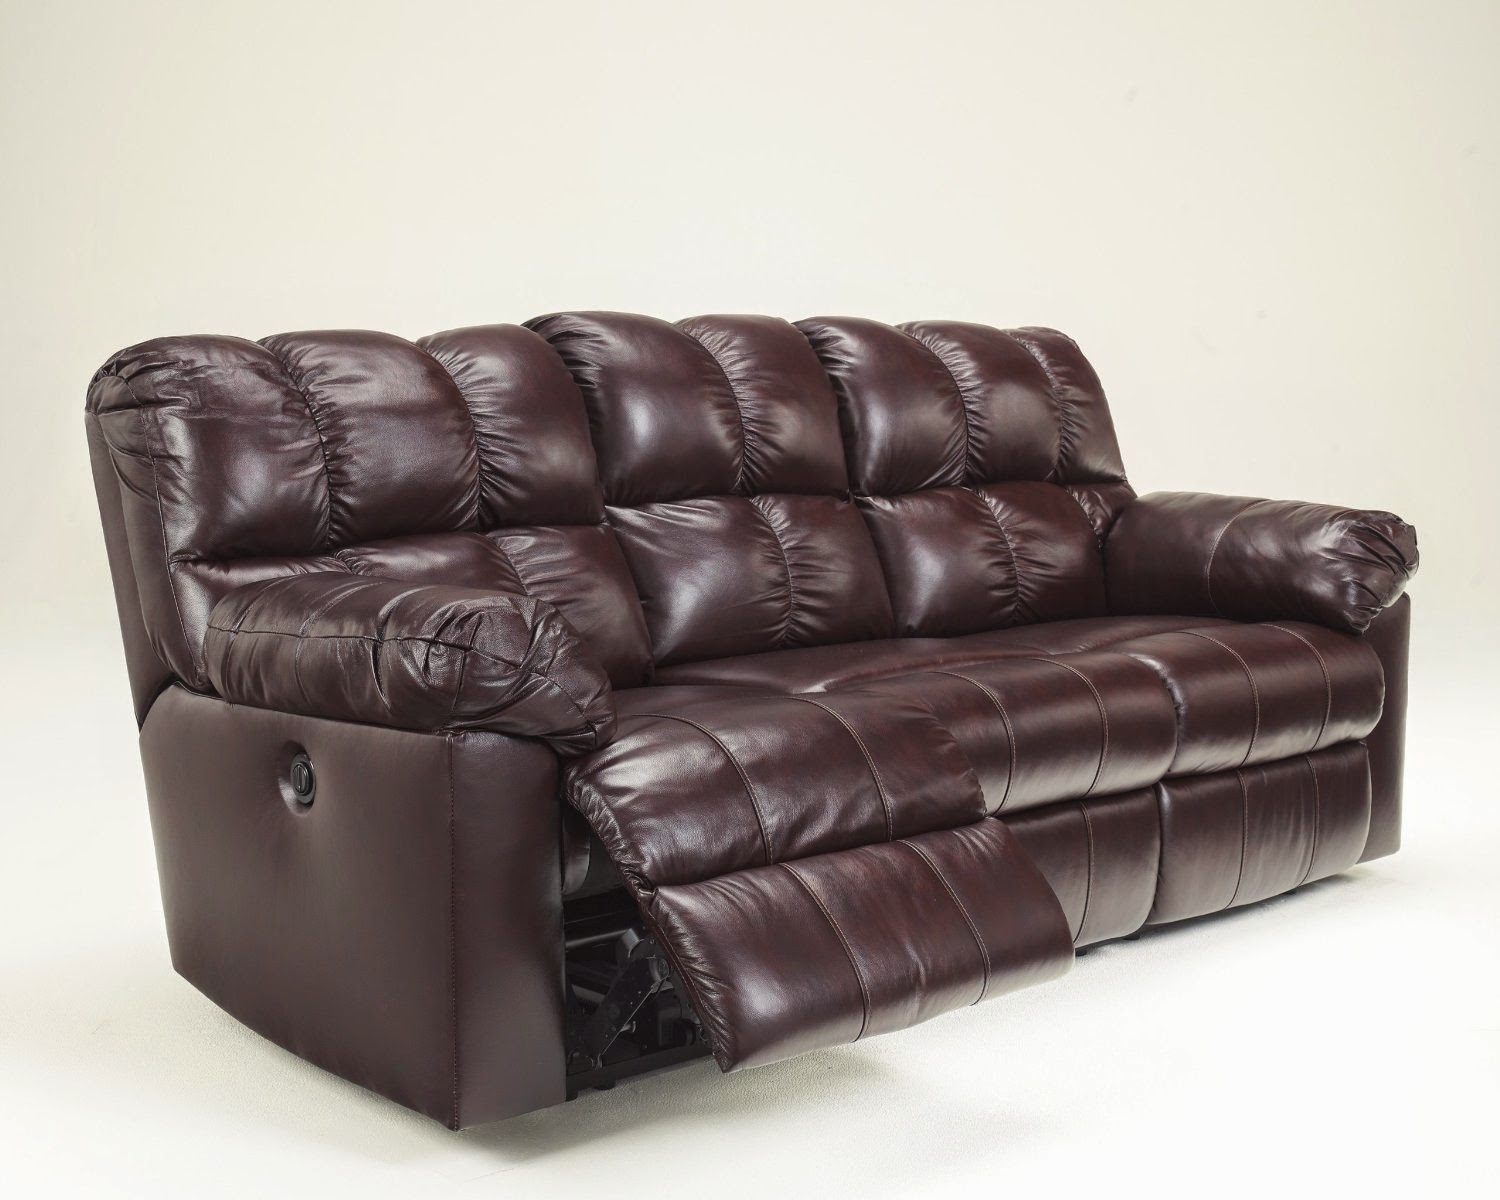 Reclining sofas for sale cheap red leather reclining sofa for Leather reclining sofa